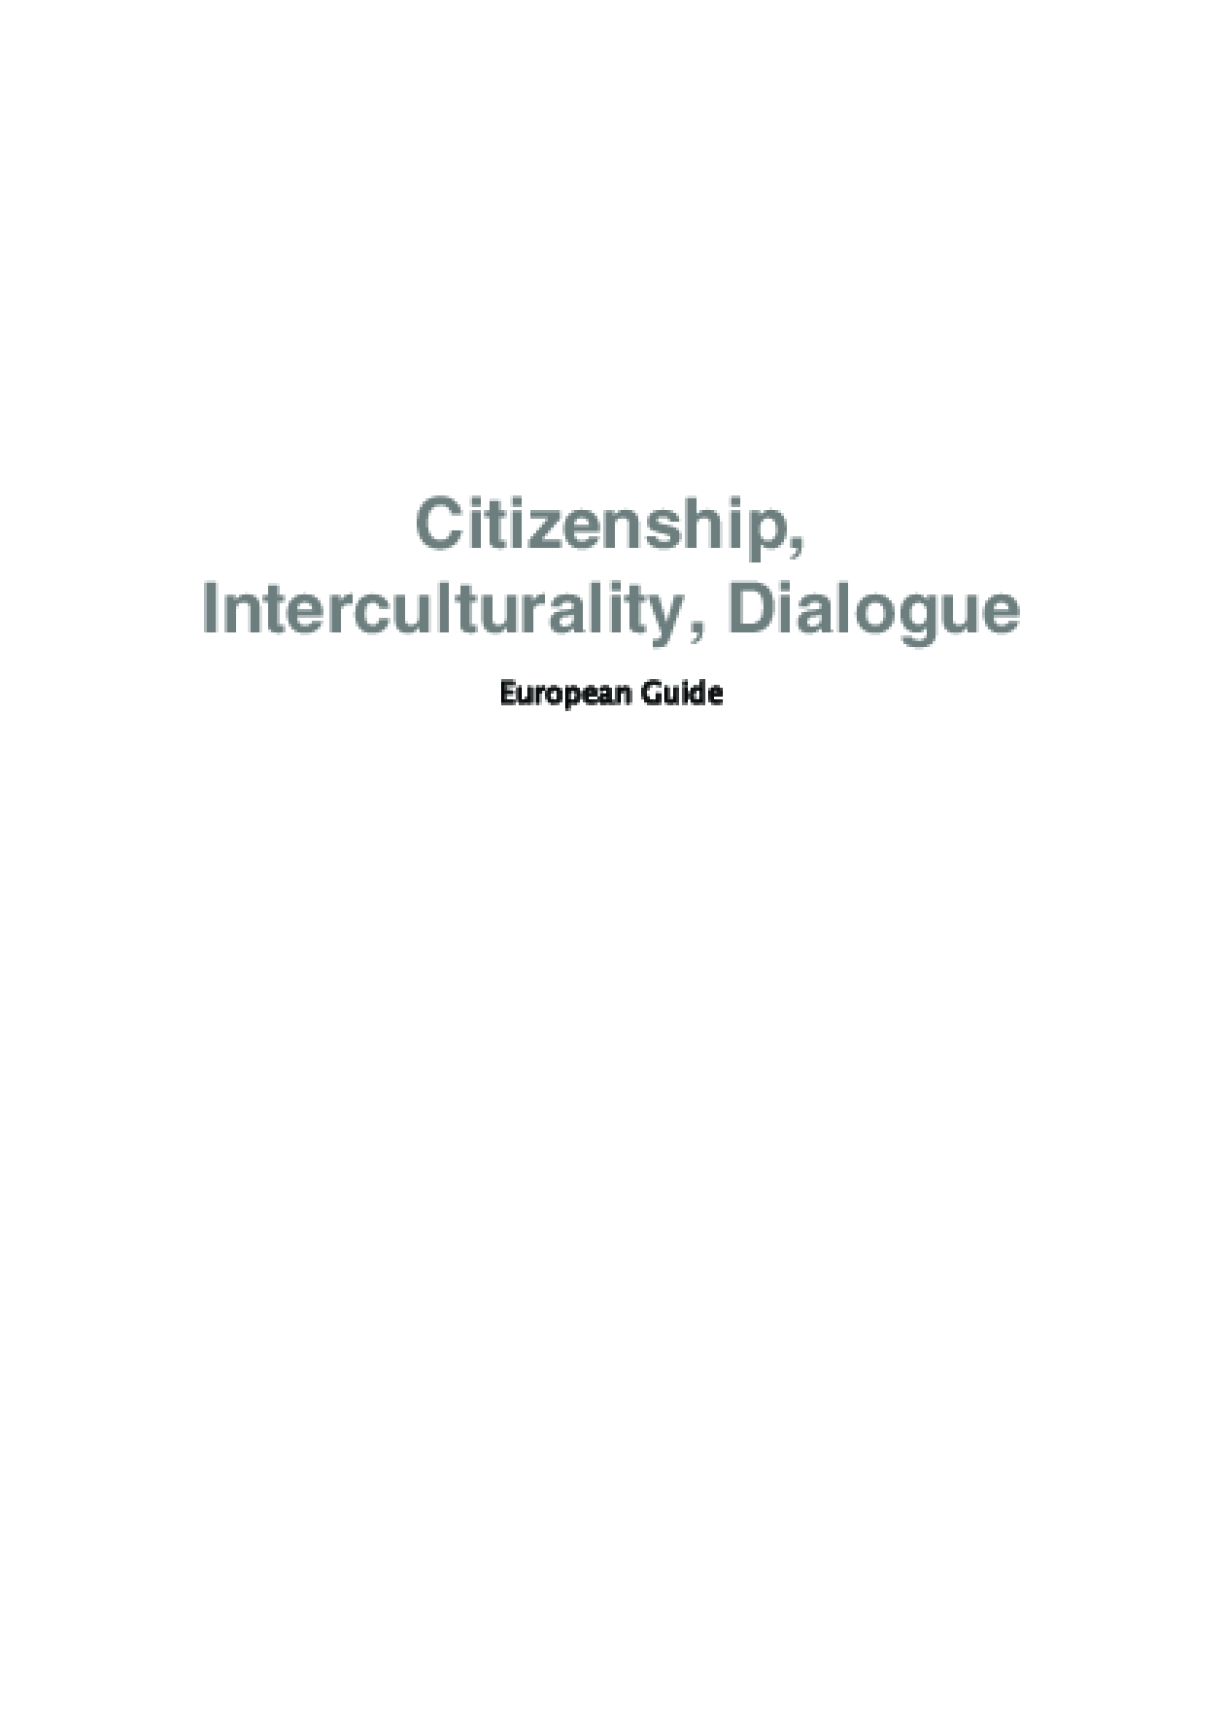 Citizenship, Interculturality and Dialogue : European Guide